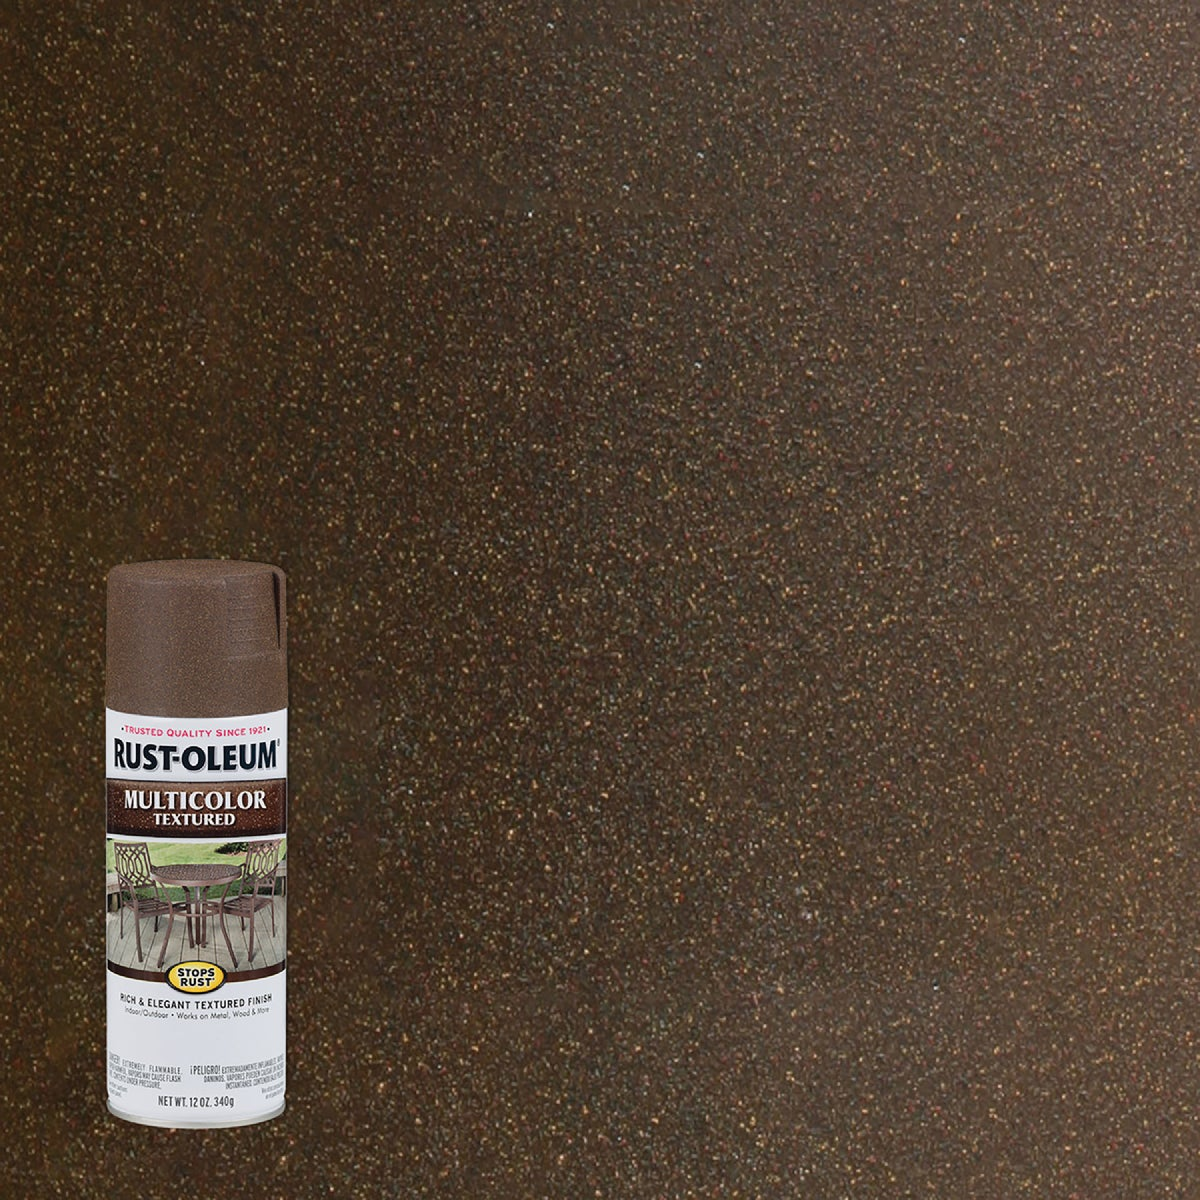 AUTUMN BROWN SPRAY PAINT - 223523 by Rustoleum